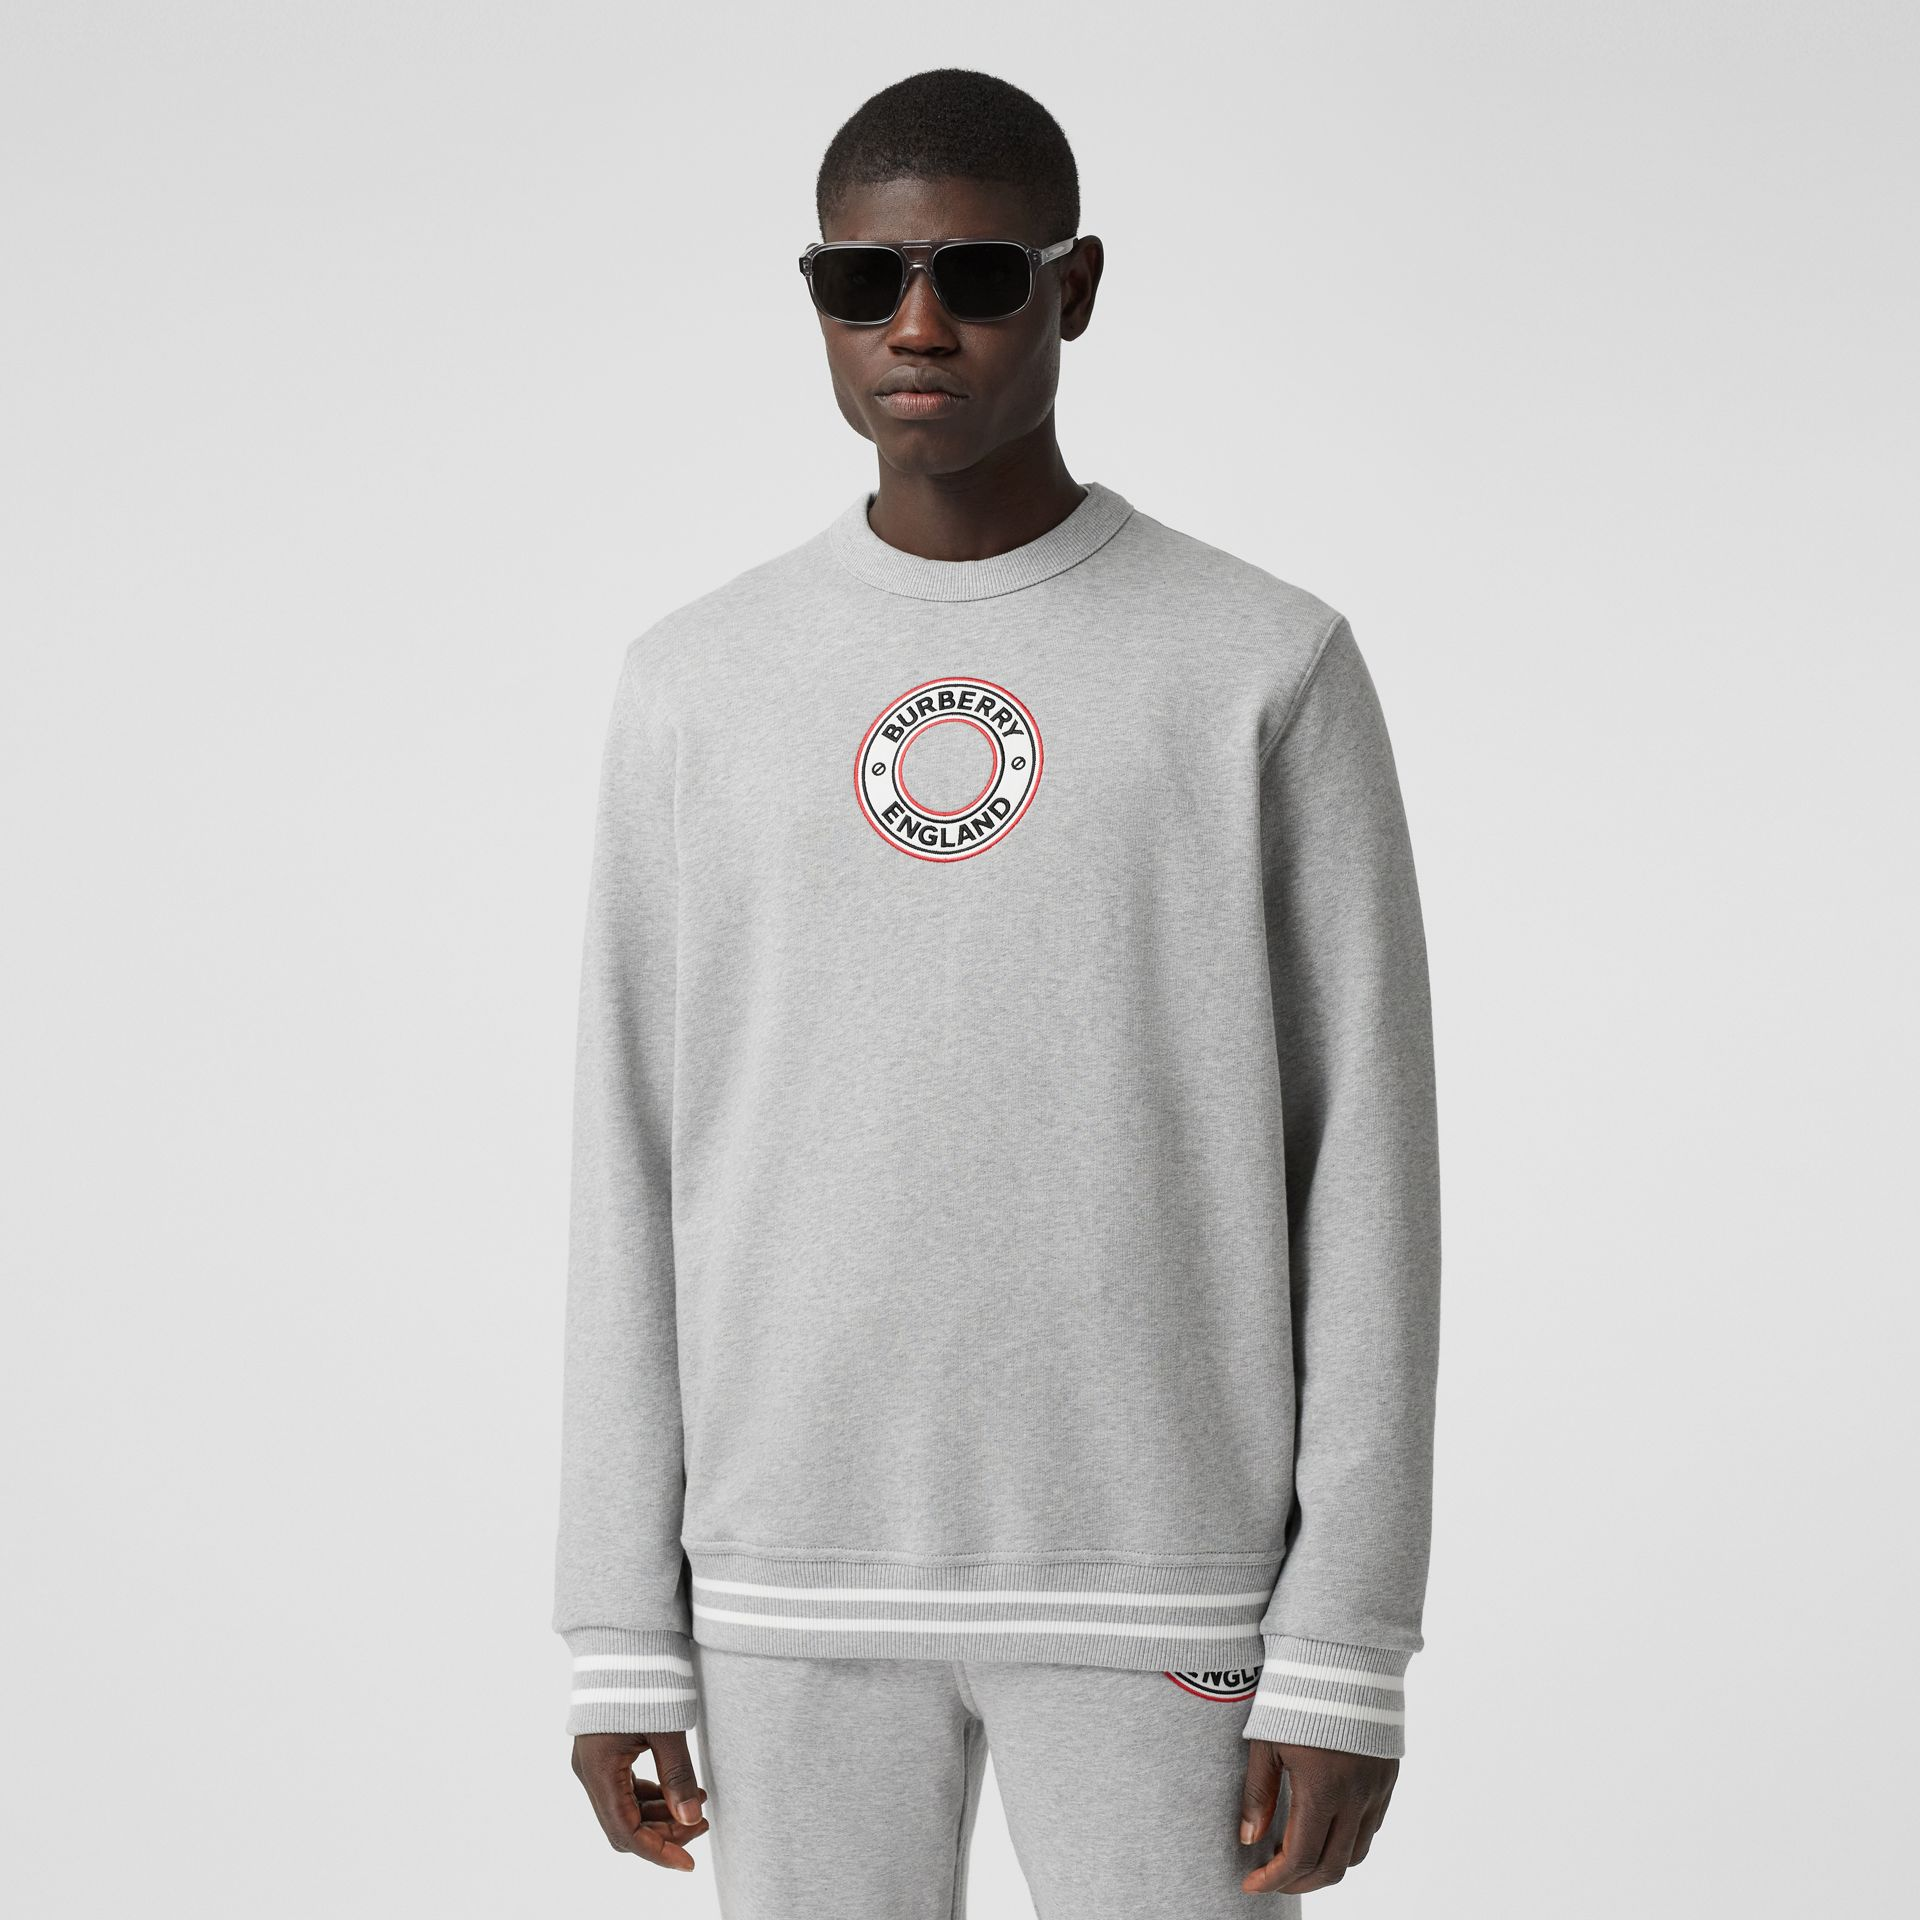 Logo Graphic Appliqué Cotton Sweatshirt in Pale Grey Melange - Men | Burberry - gallery image 0